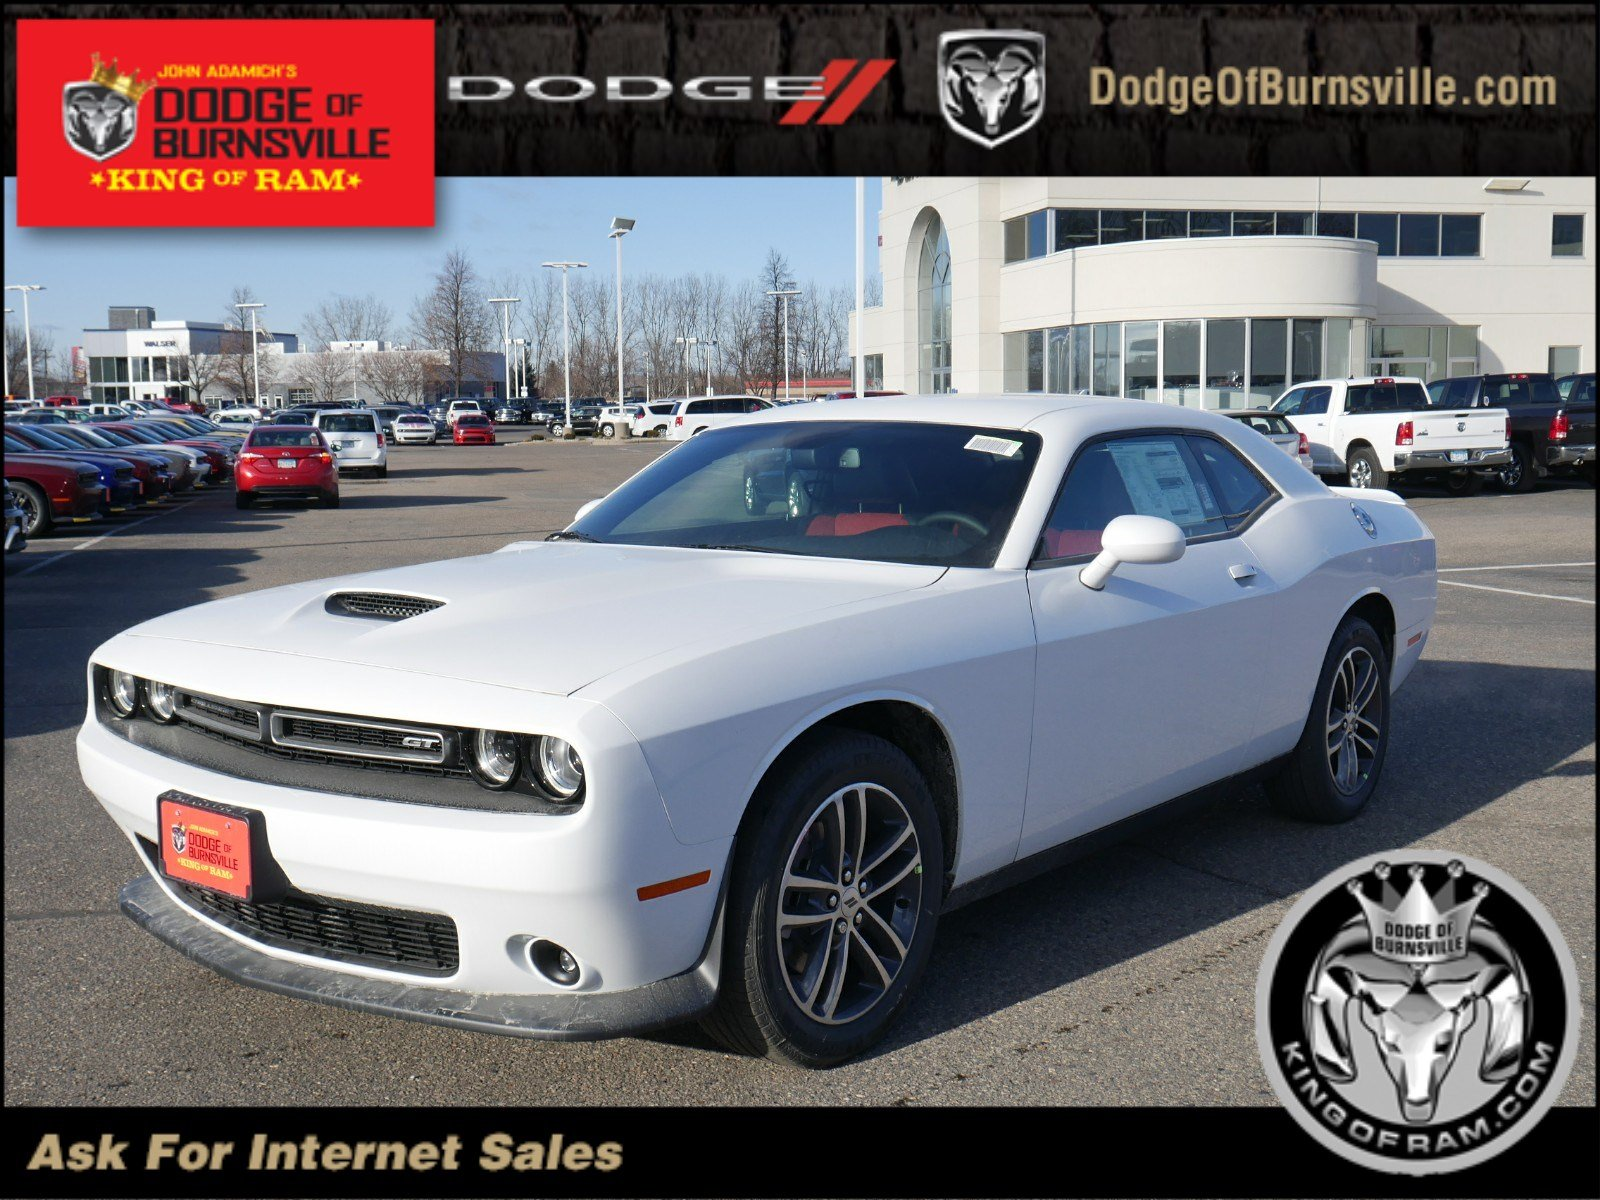 New 2019 Dodge Challenger Gt Coupe In Burnsville N32508 Dodge Of